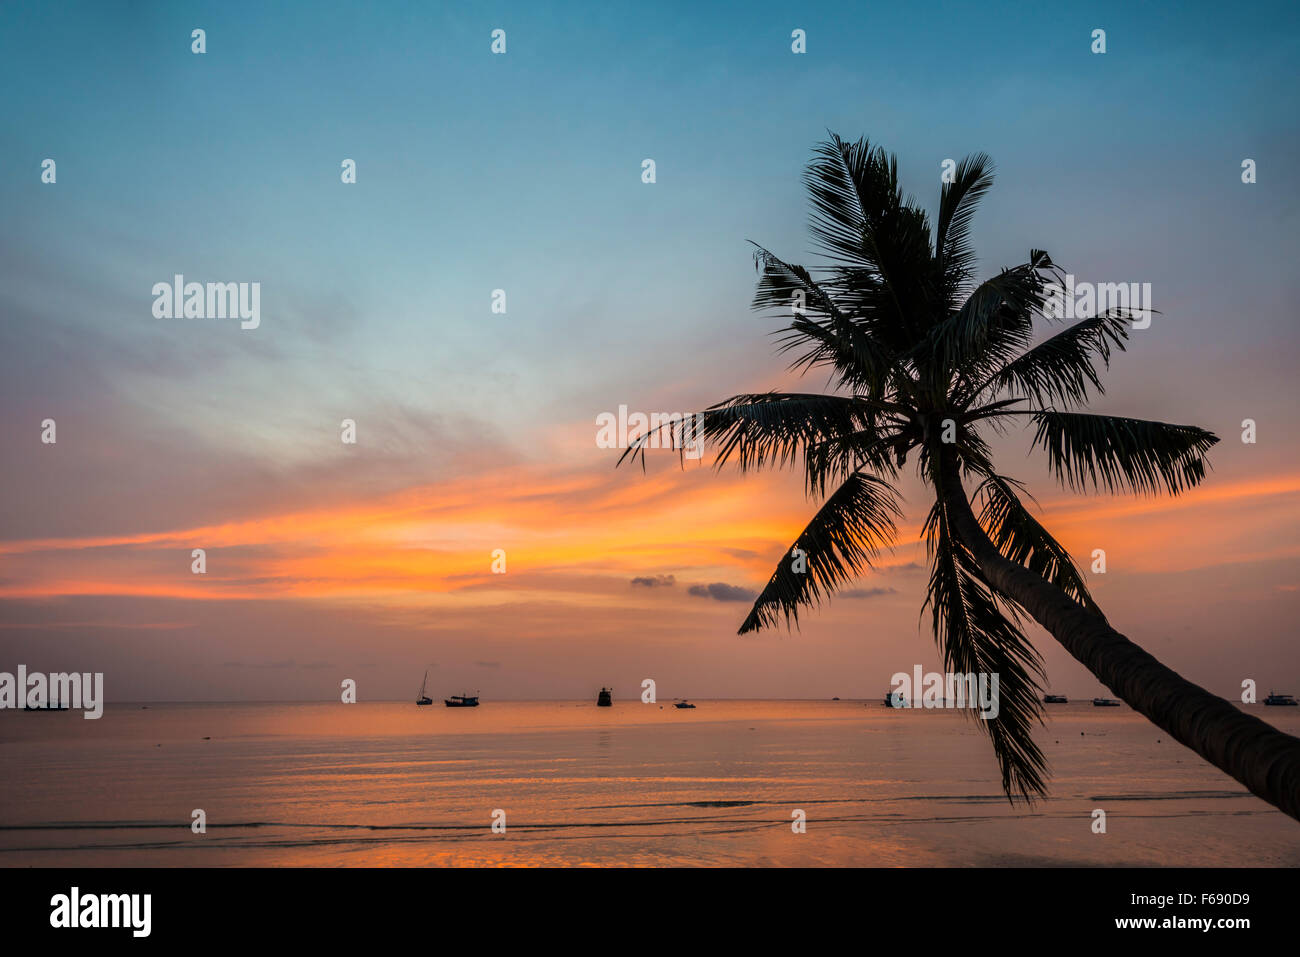 Palm tree at sunset by the sea south china sea gulf of thailand palm tree at sunset by the sea south china sea gulf of thailand koh tao thailand publicscrutiny Images